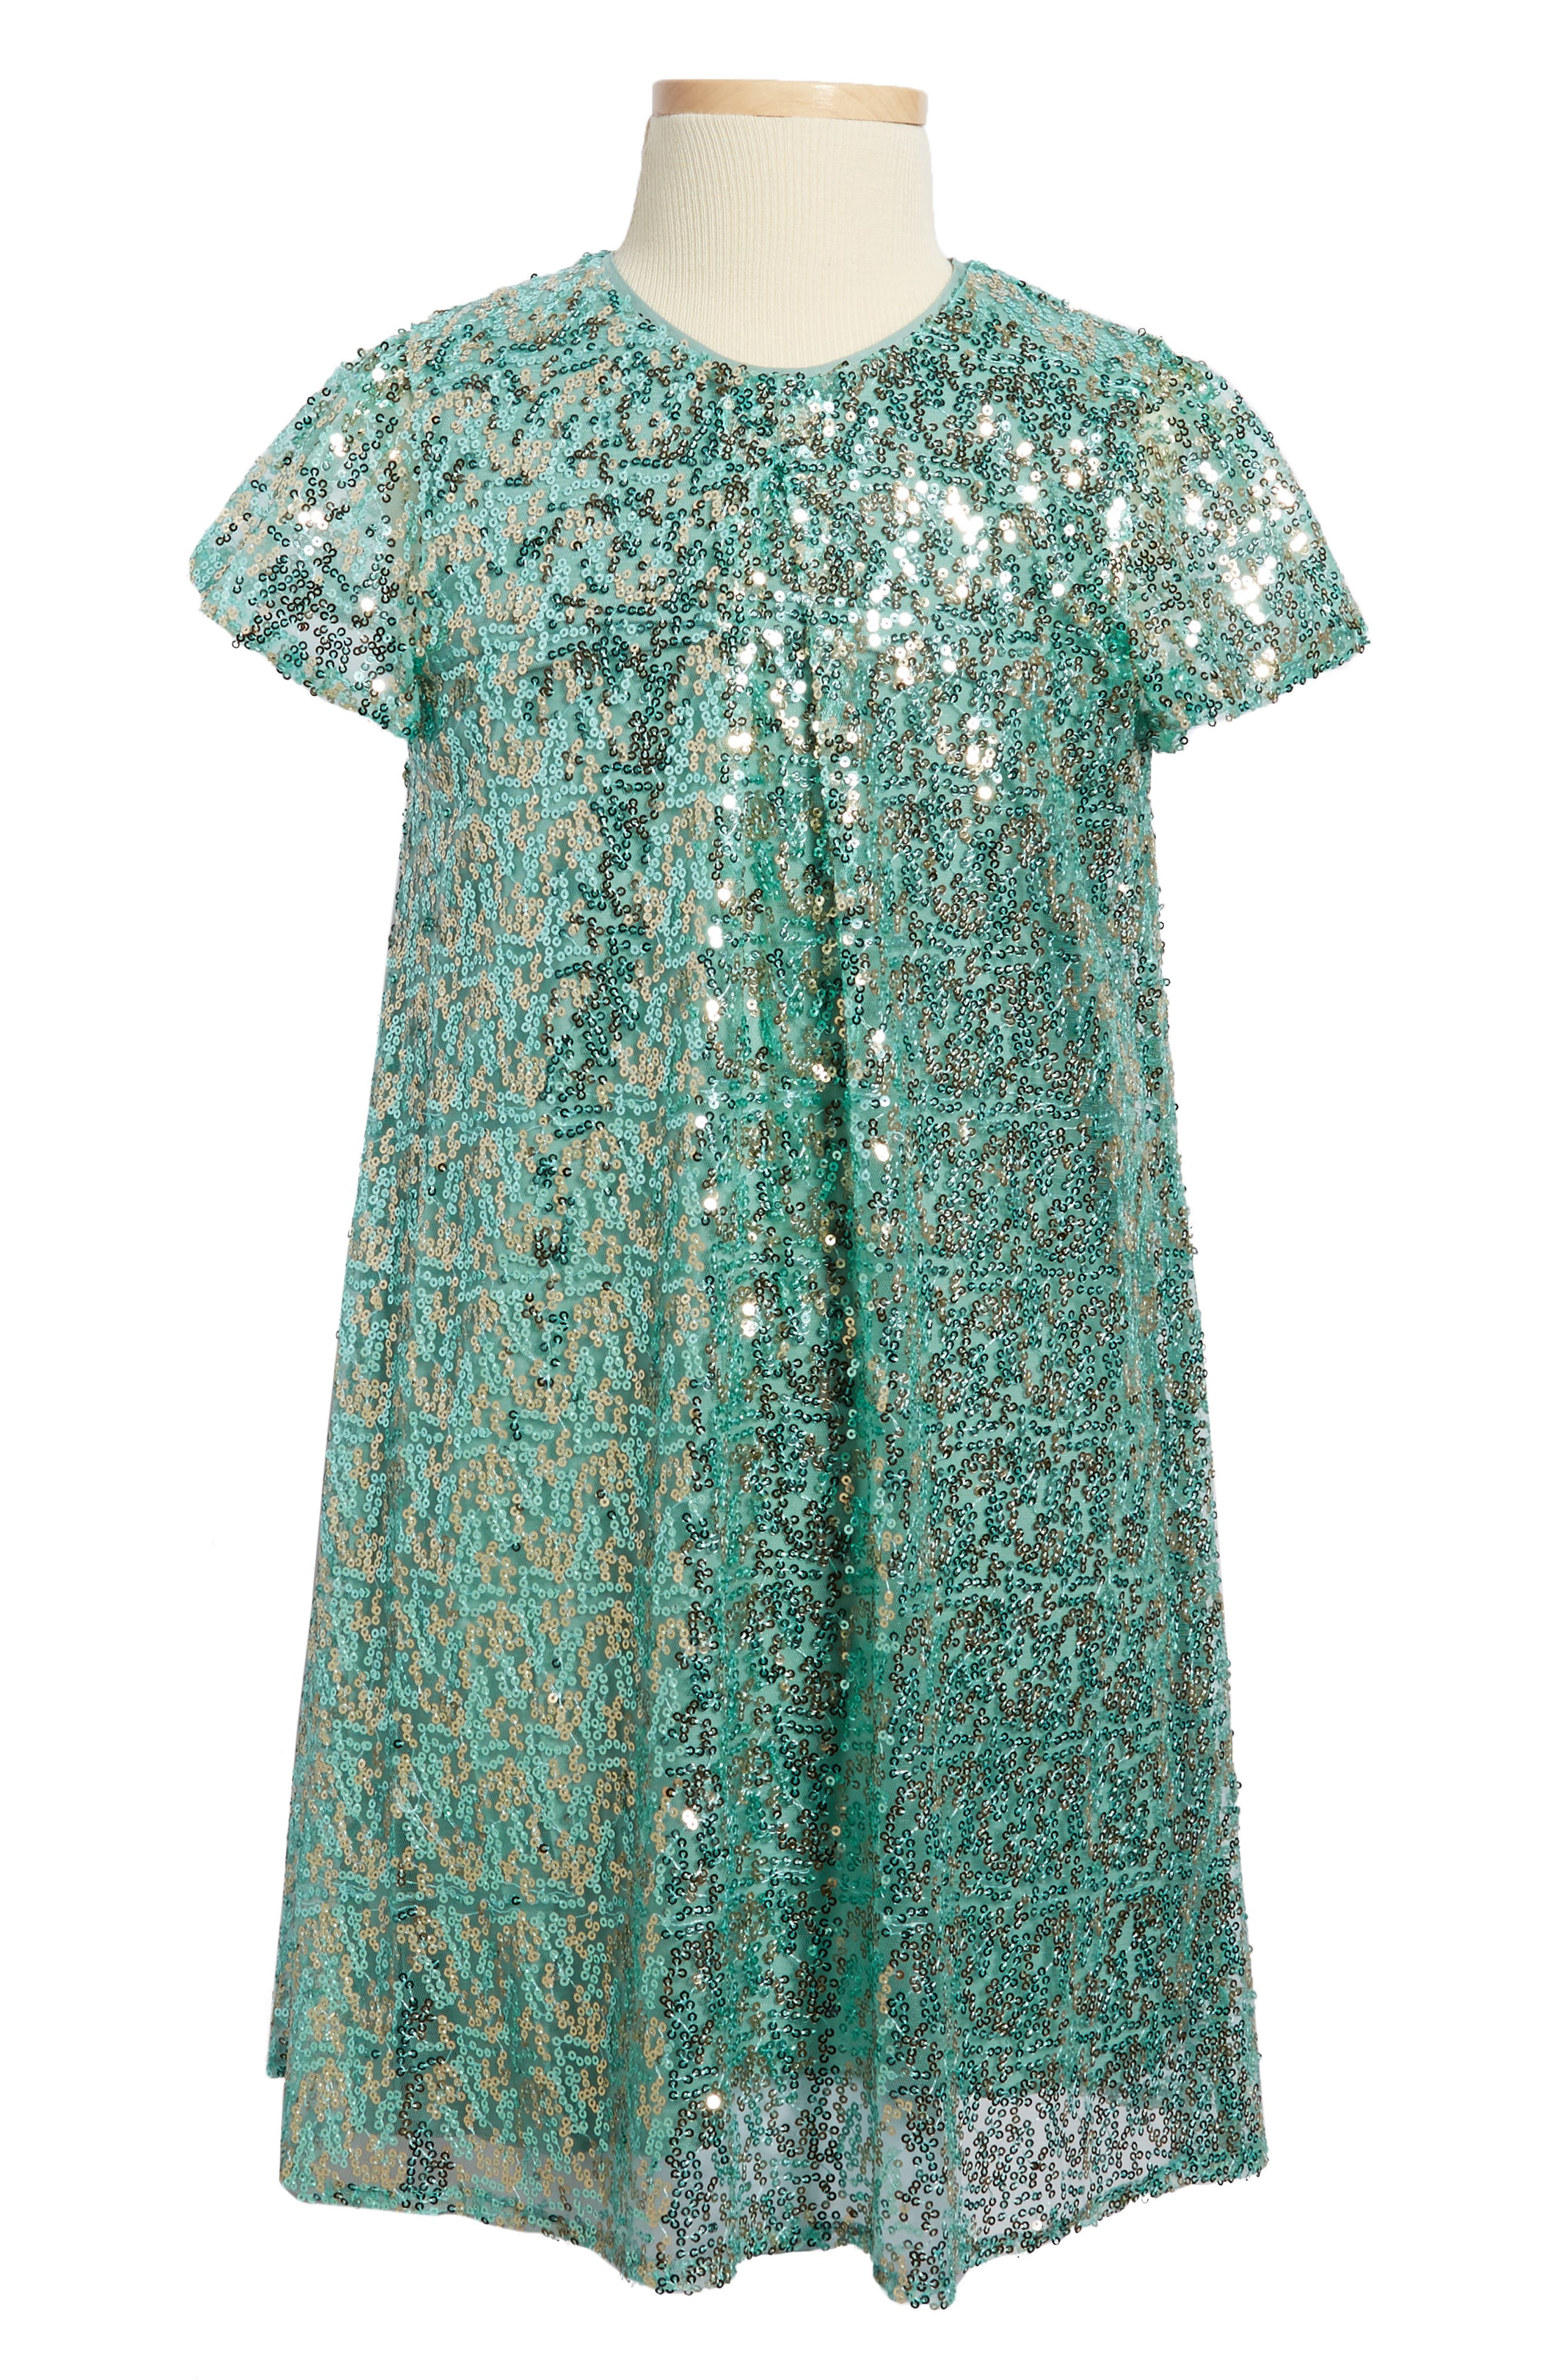 Wild & Gorgeous Sequin Embellished Dress (Toddler Girls, Little Girls & Big Girls)